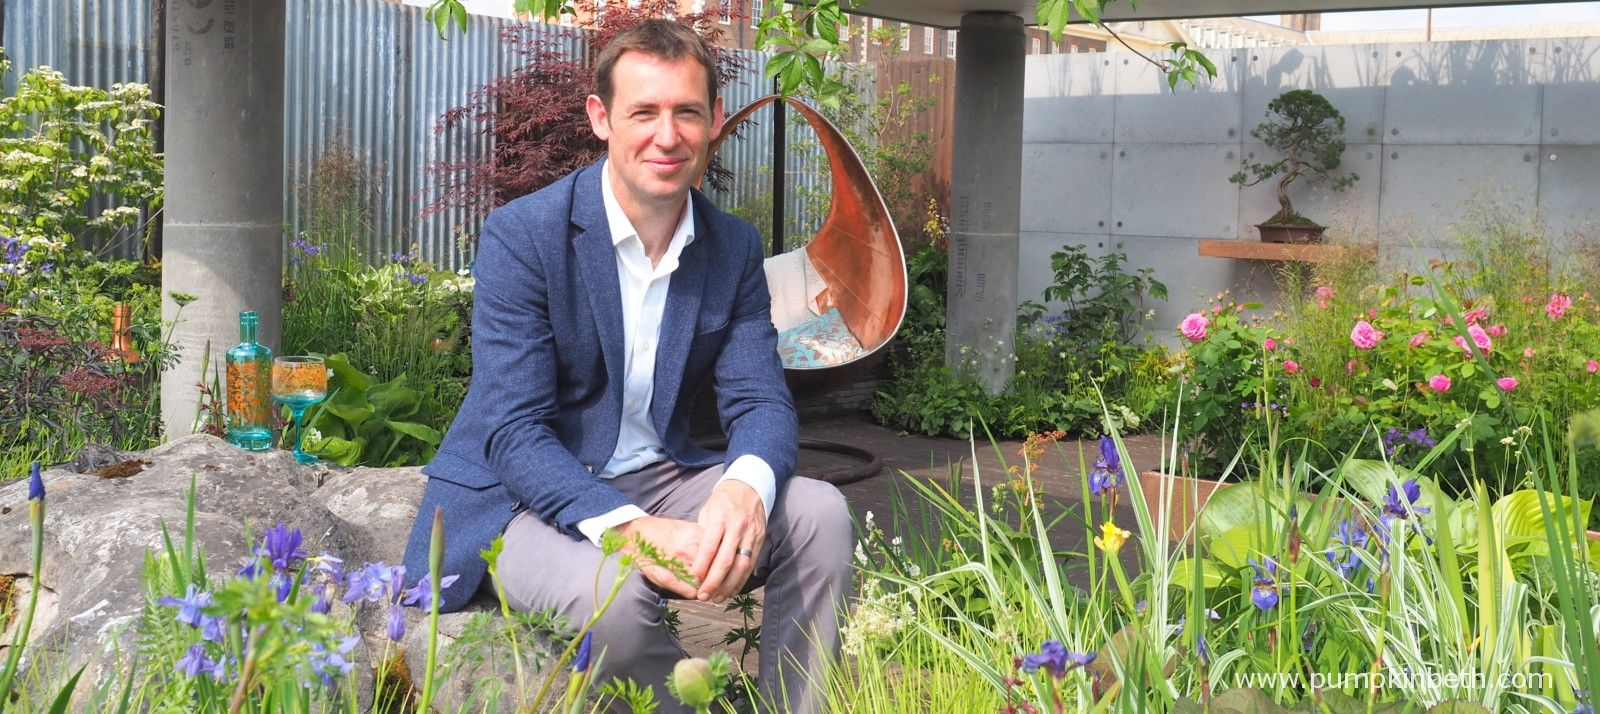 David Neale And The Silent Pool Gin Garden At The Rhs Chelsea